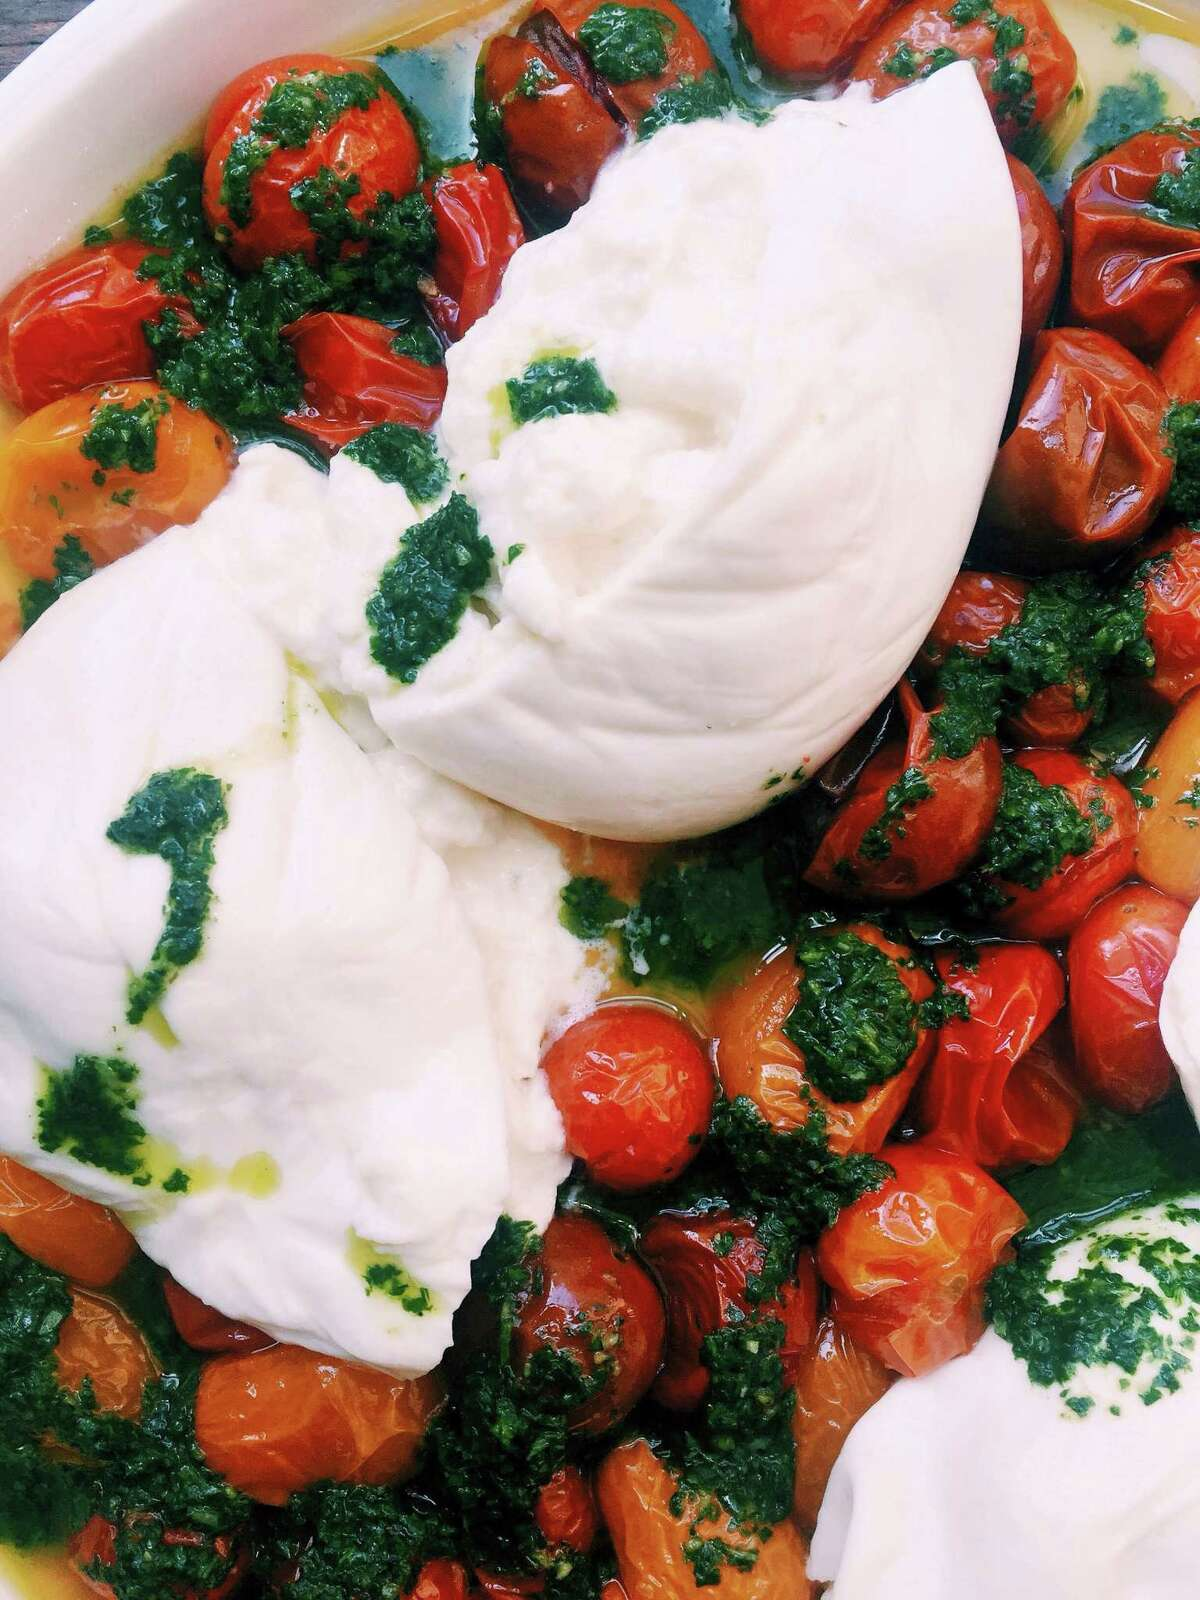 If you have never tried burrata, go out and find some and then make cherry tomatoes with burrata.